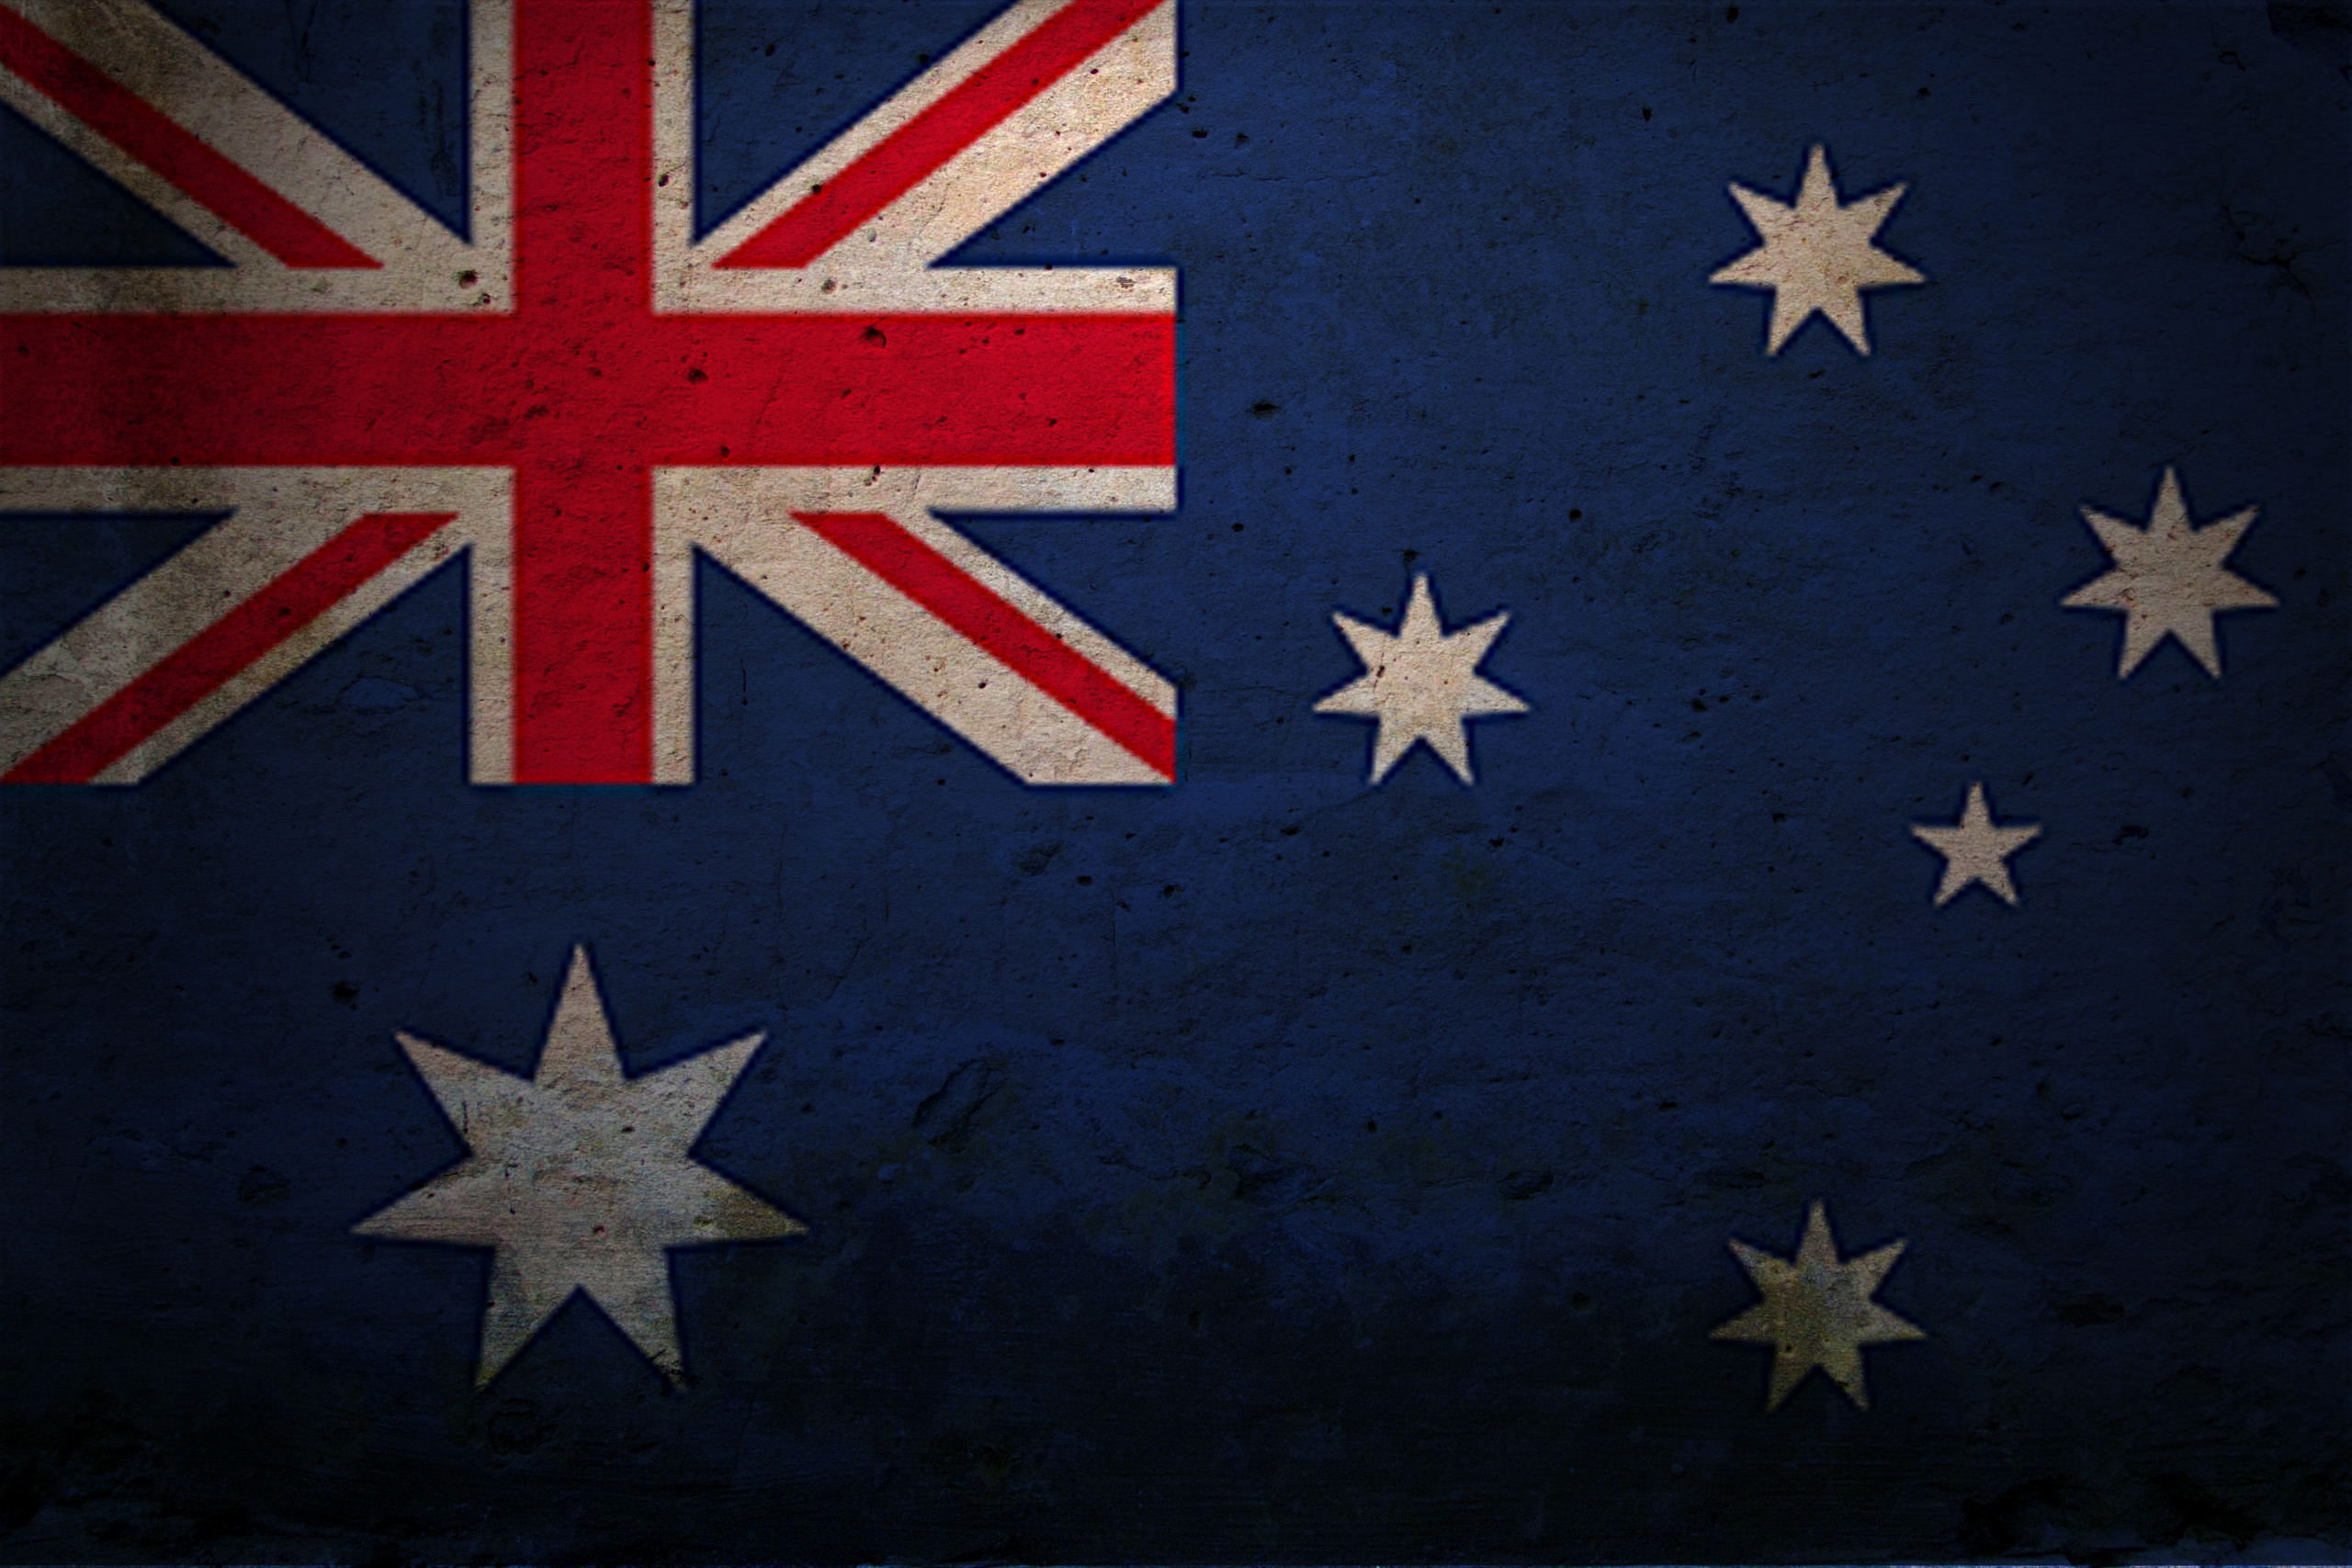 Australia Flag HD Wallpaper Background Images 2560x1707